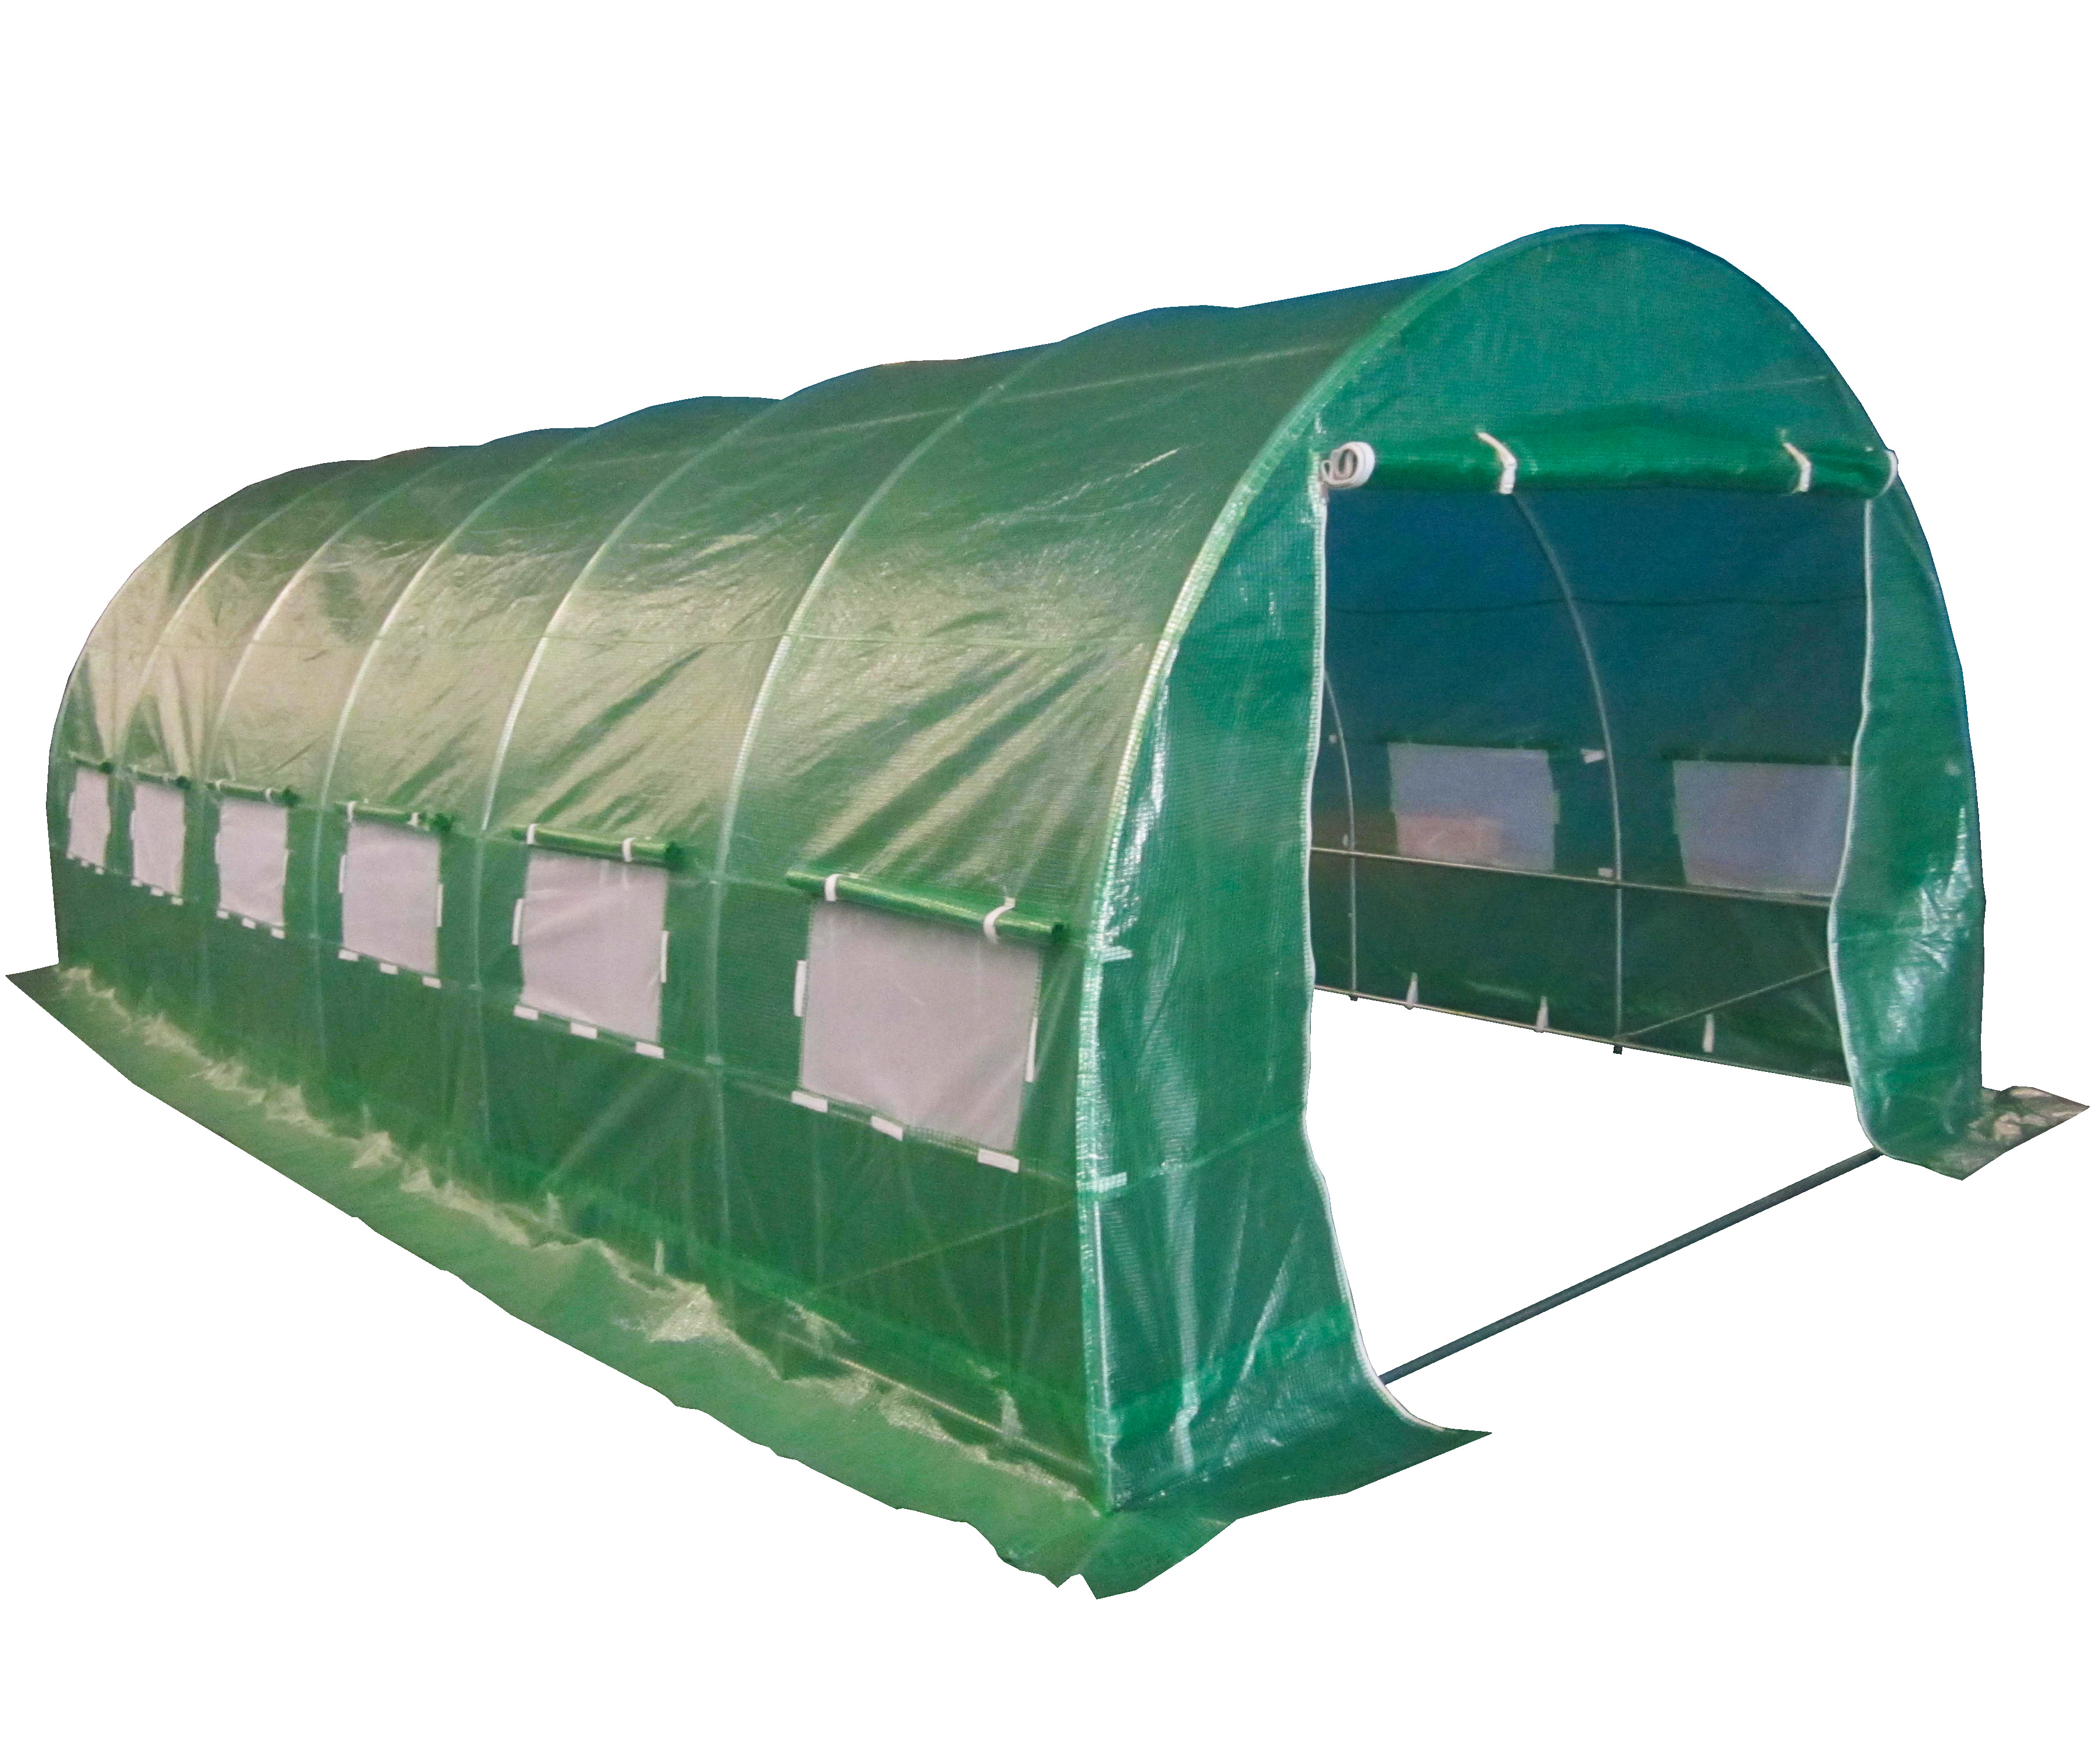 Polytunnel Galvanised Frame 6m x 3m Greenhouse Pollytunnel Poly Tunnel 6 Section | eBay